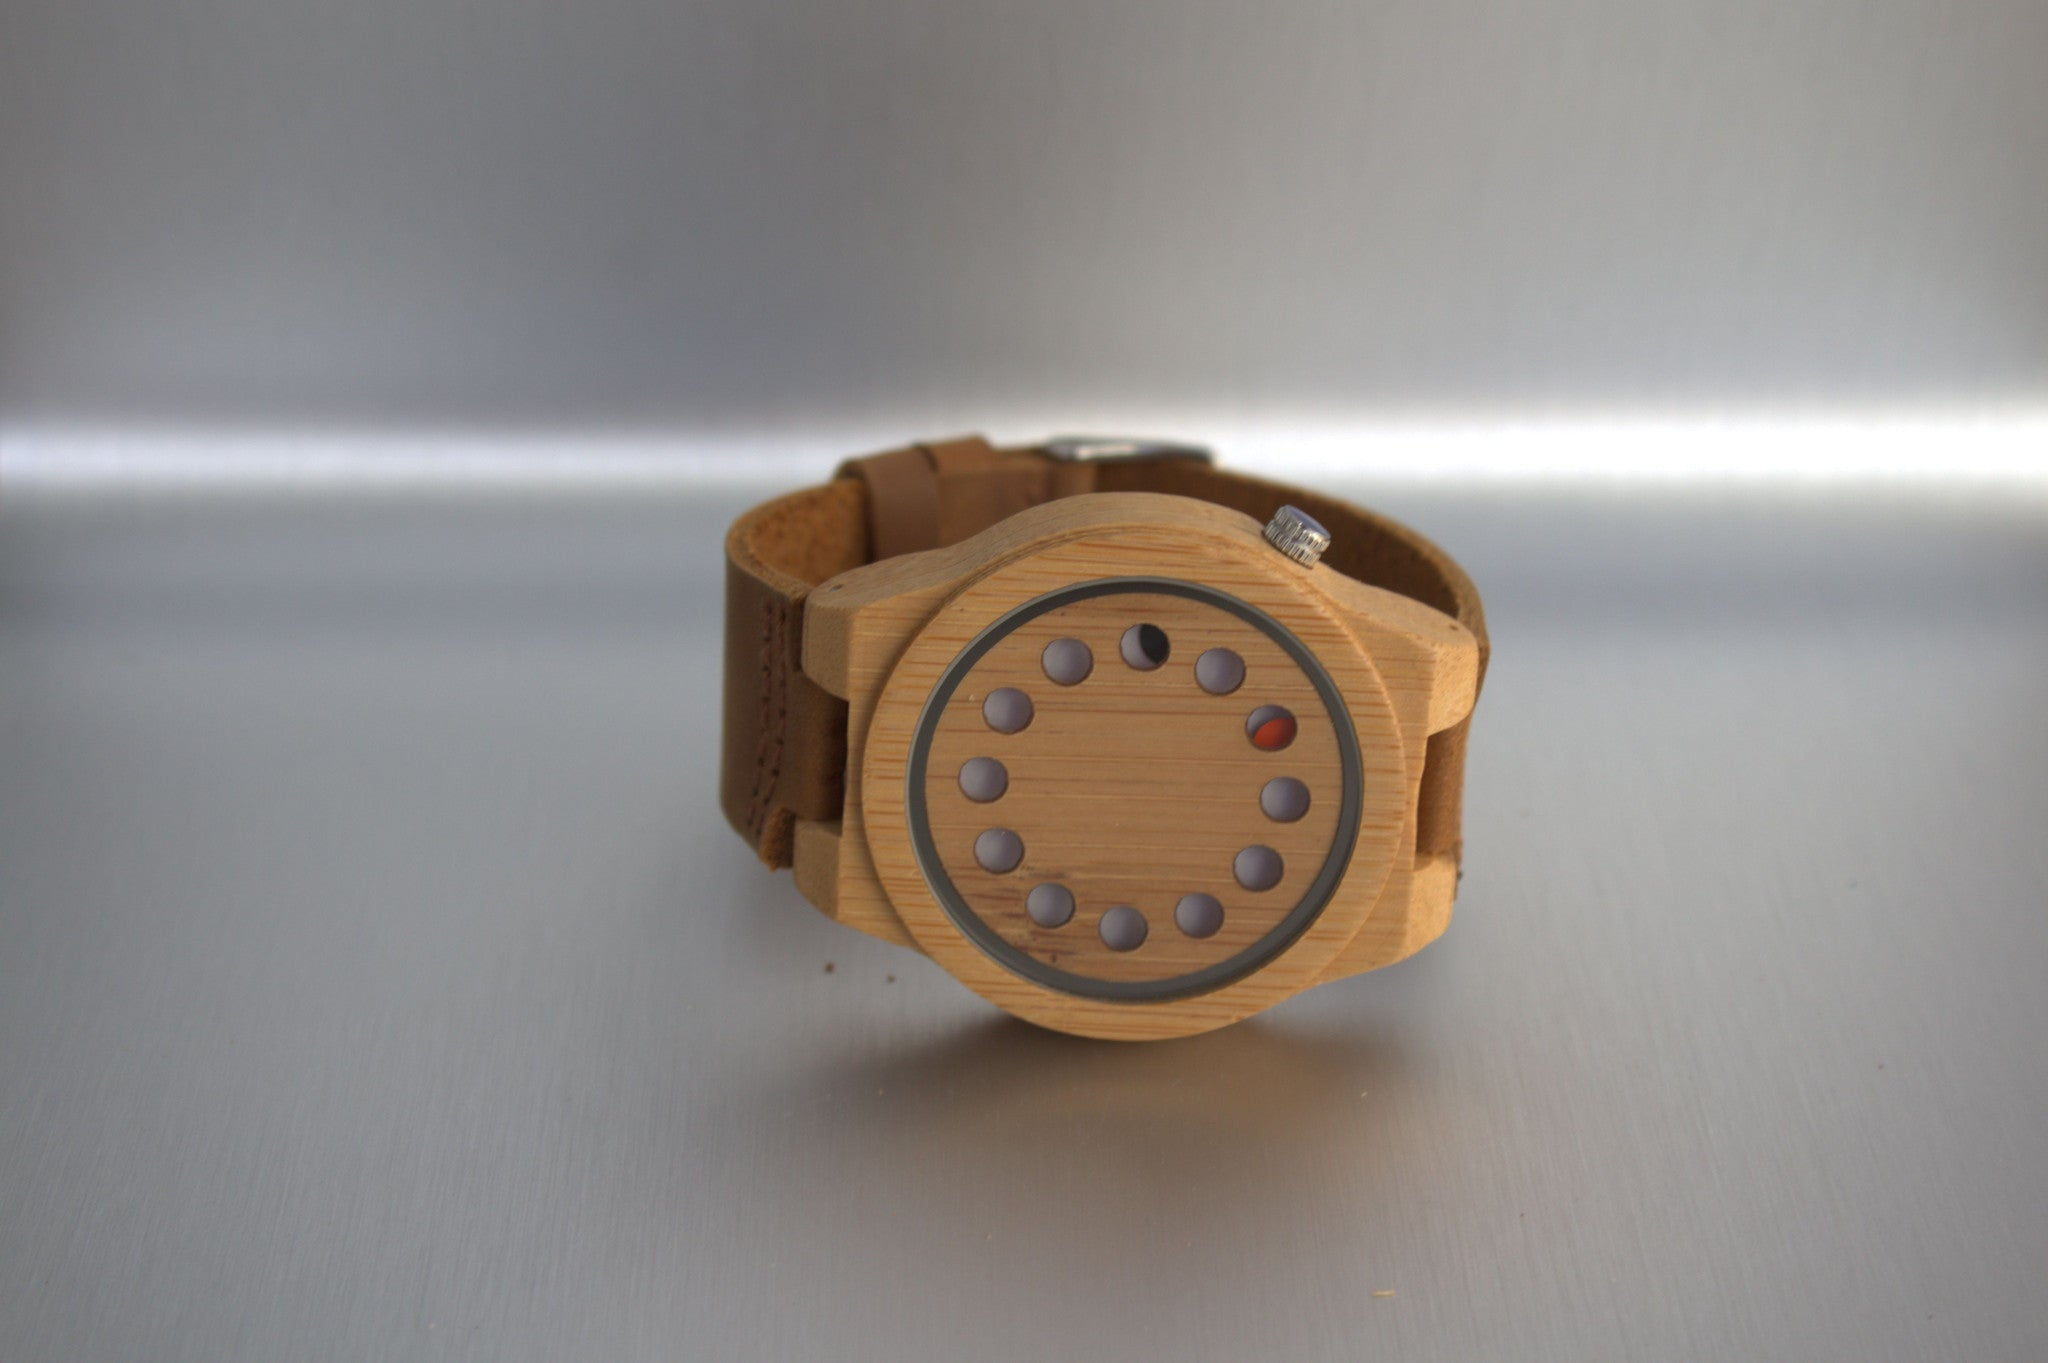 Minimalist round bamboo watch with leather strap